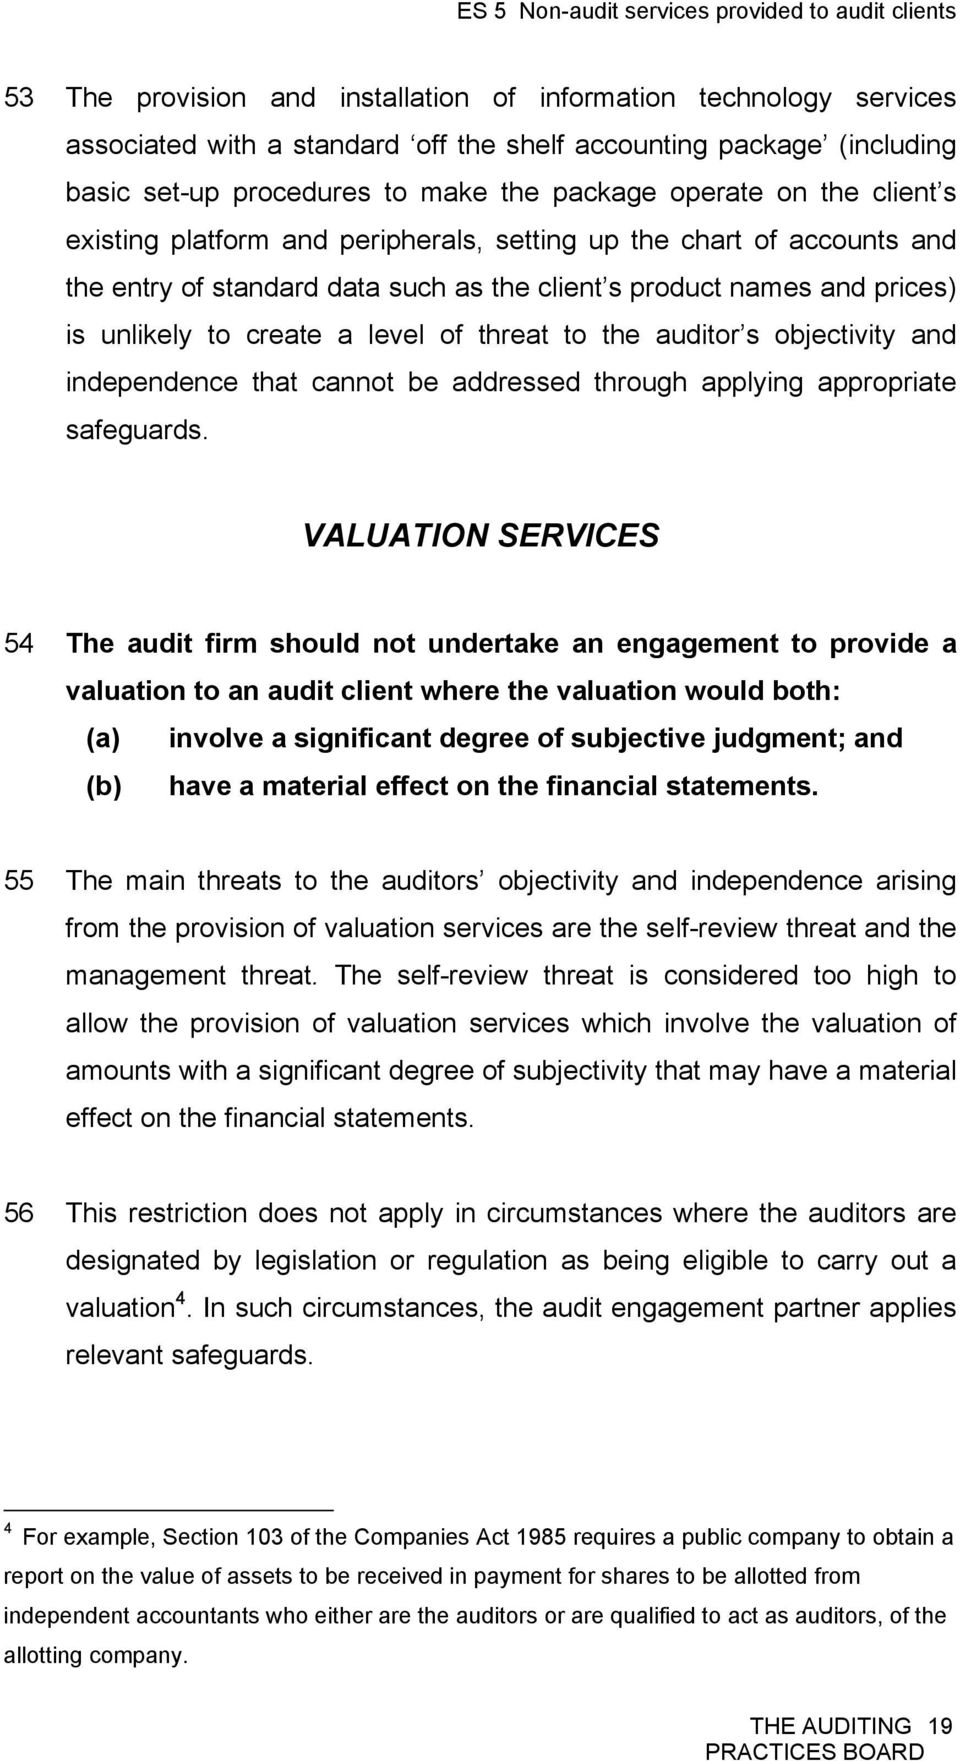 the auditor s objectivity and independence that cannot be addressed through applying appropriate safeguards.